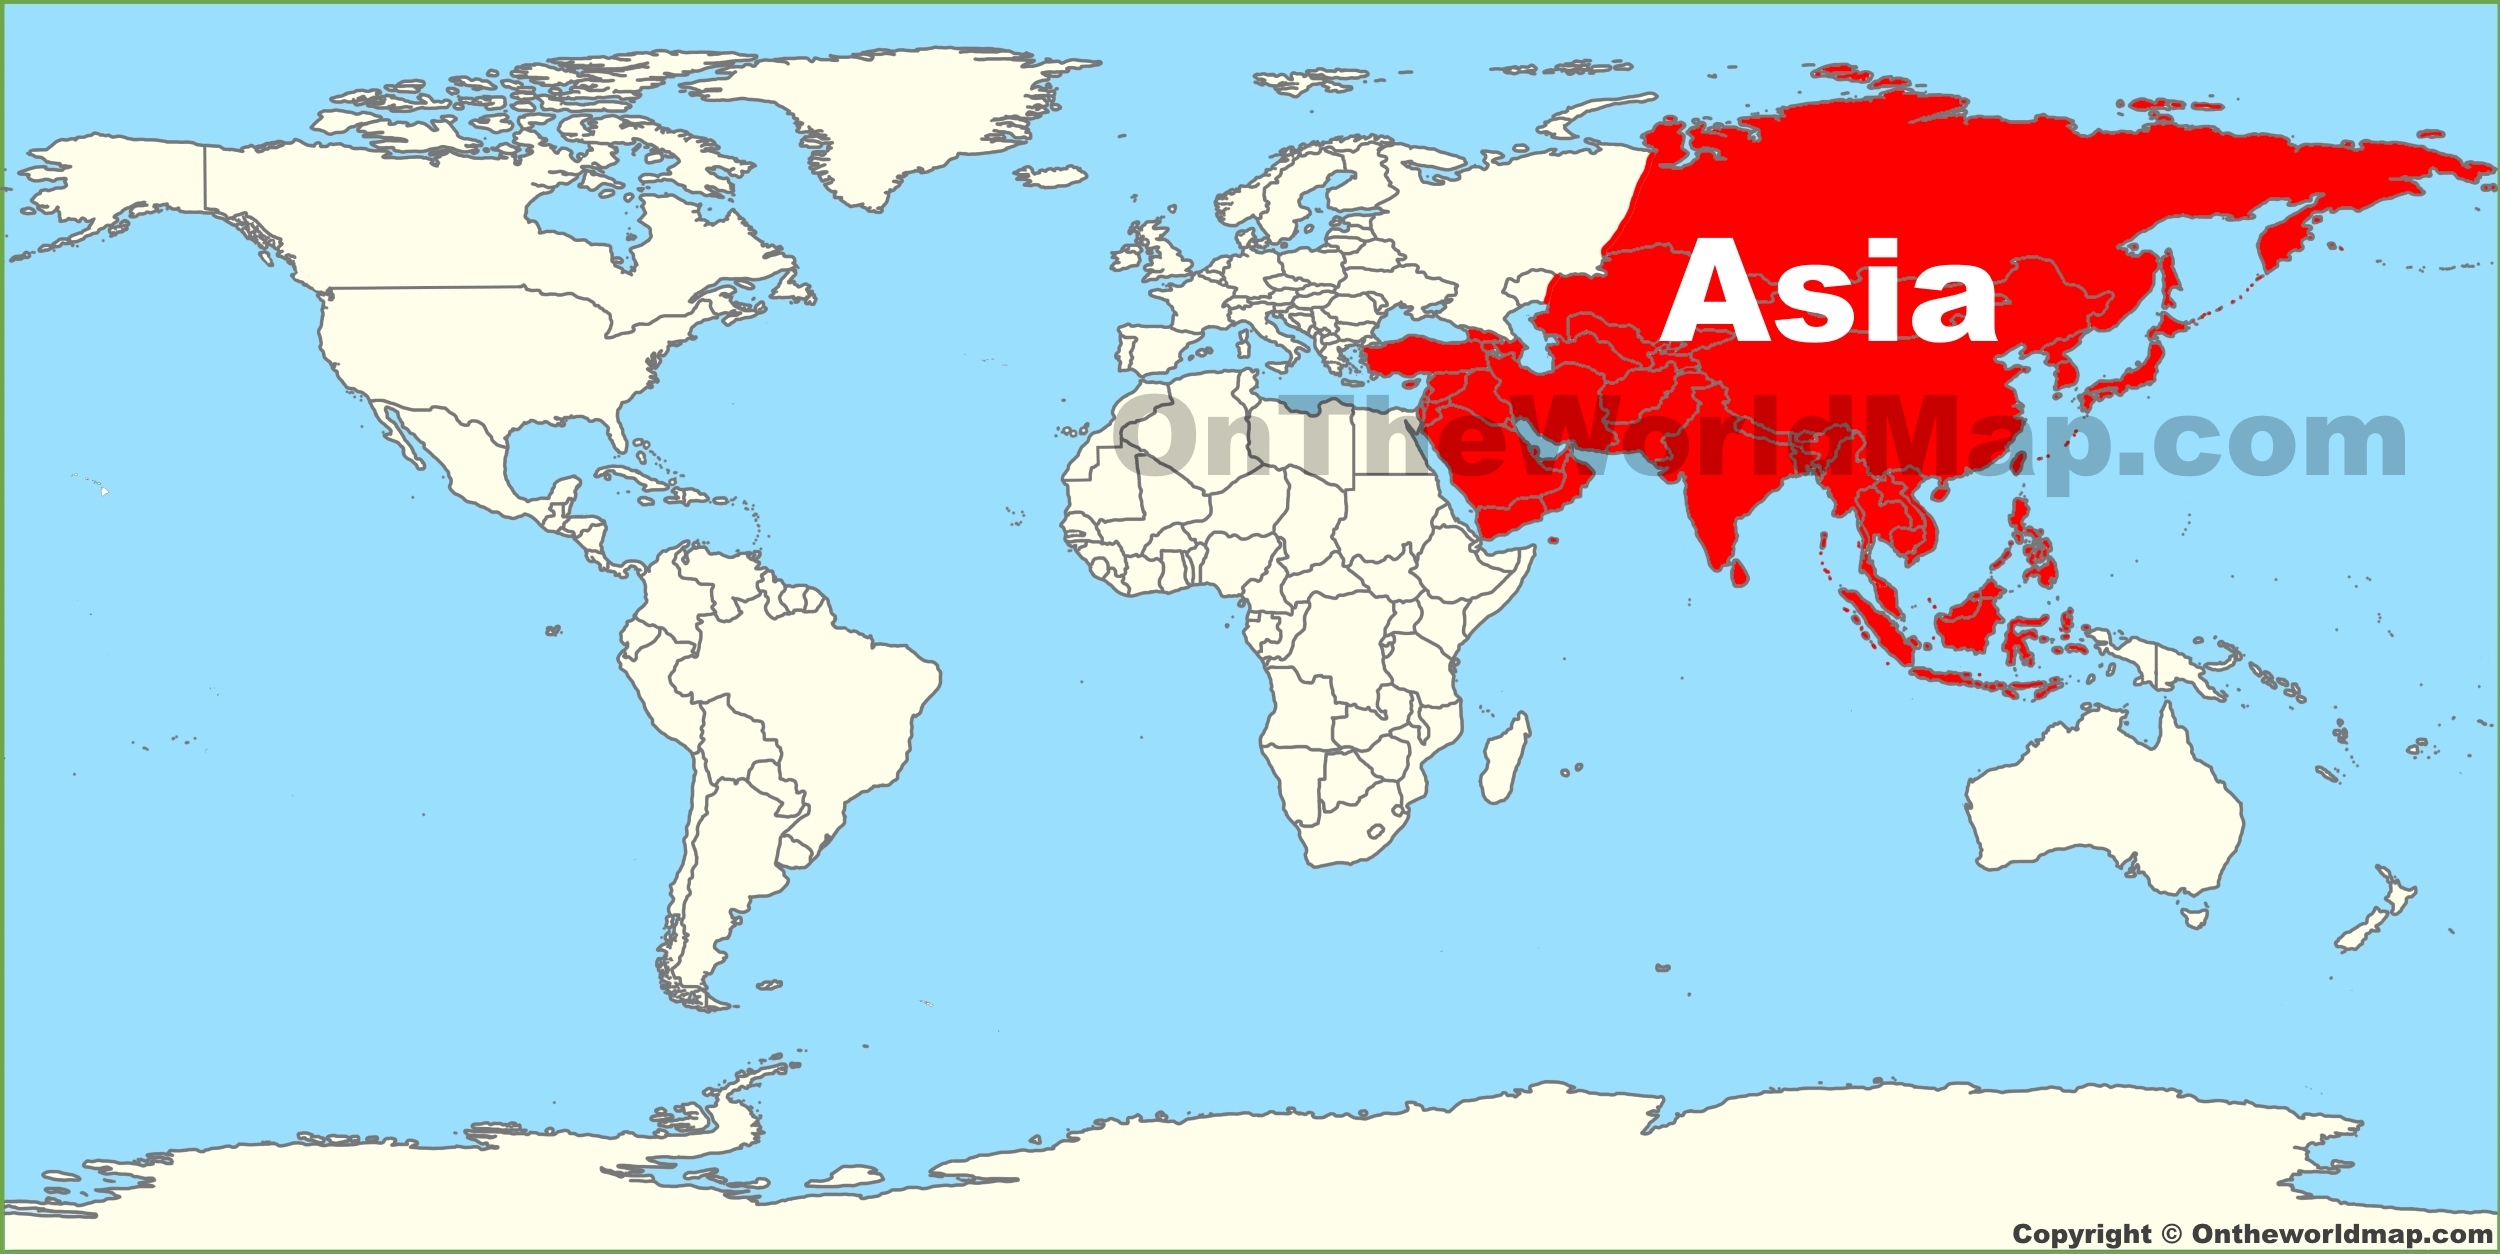 Asia on world map etamemibawa asia on world map gumiabroncs Image collections